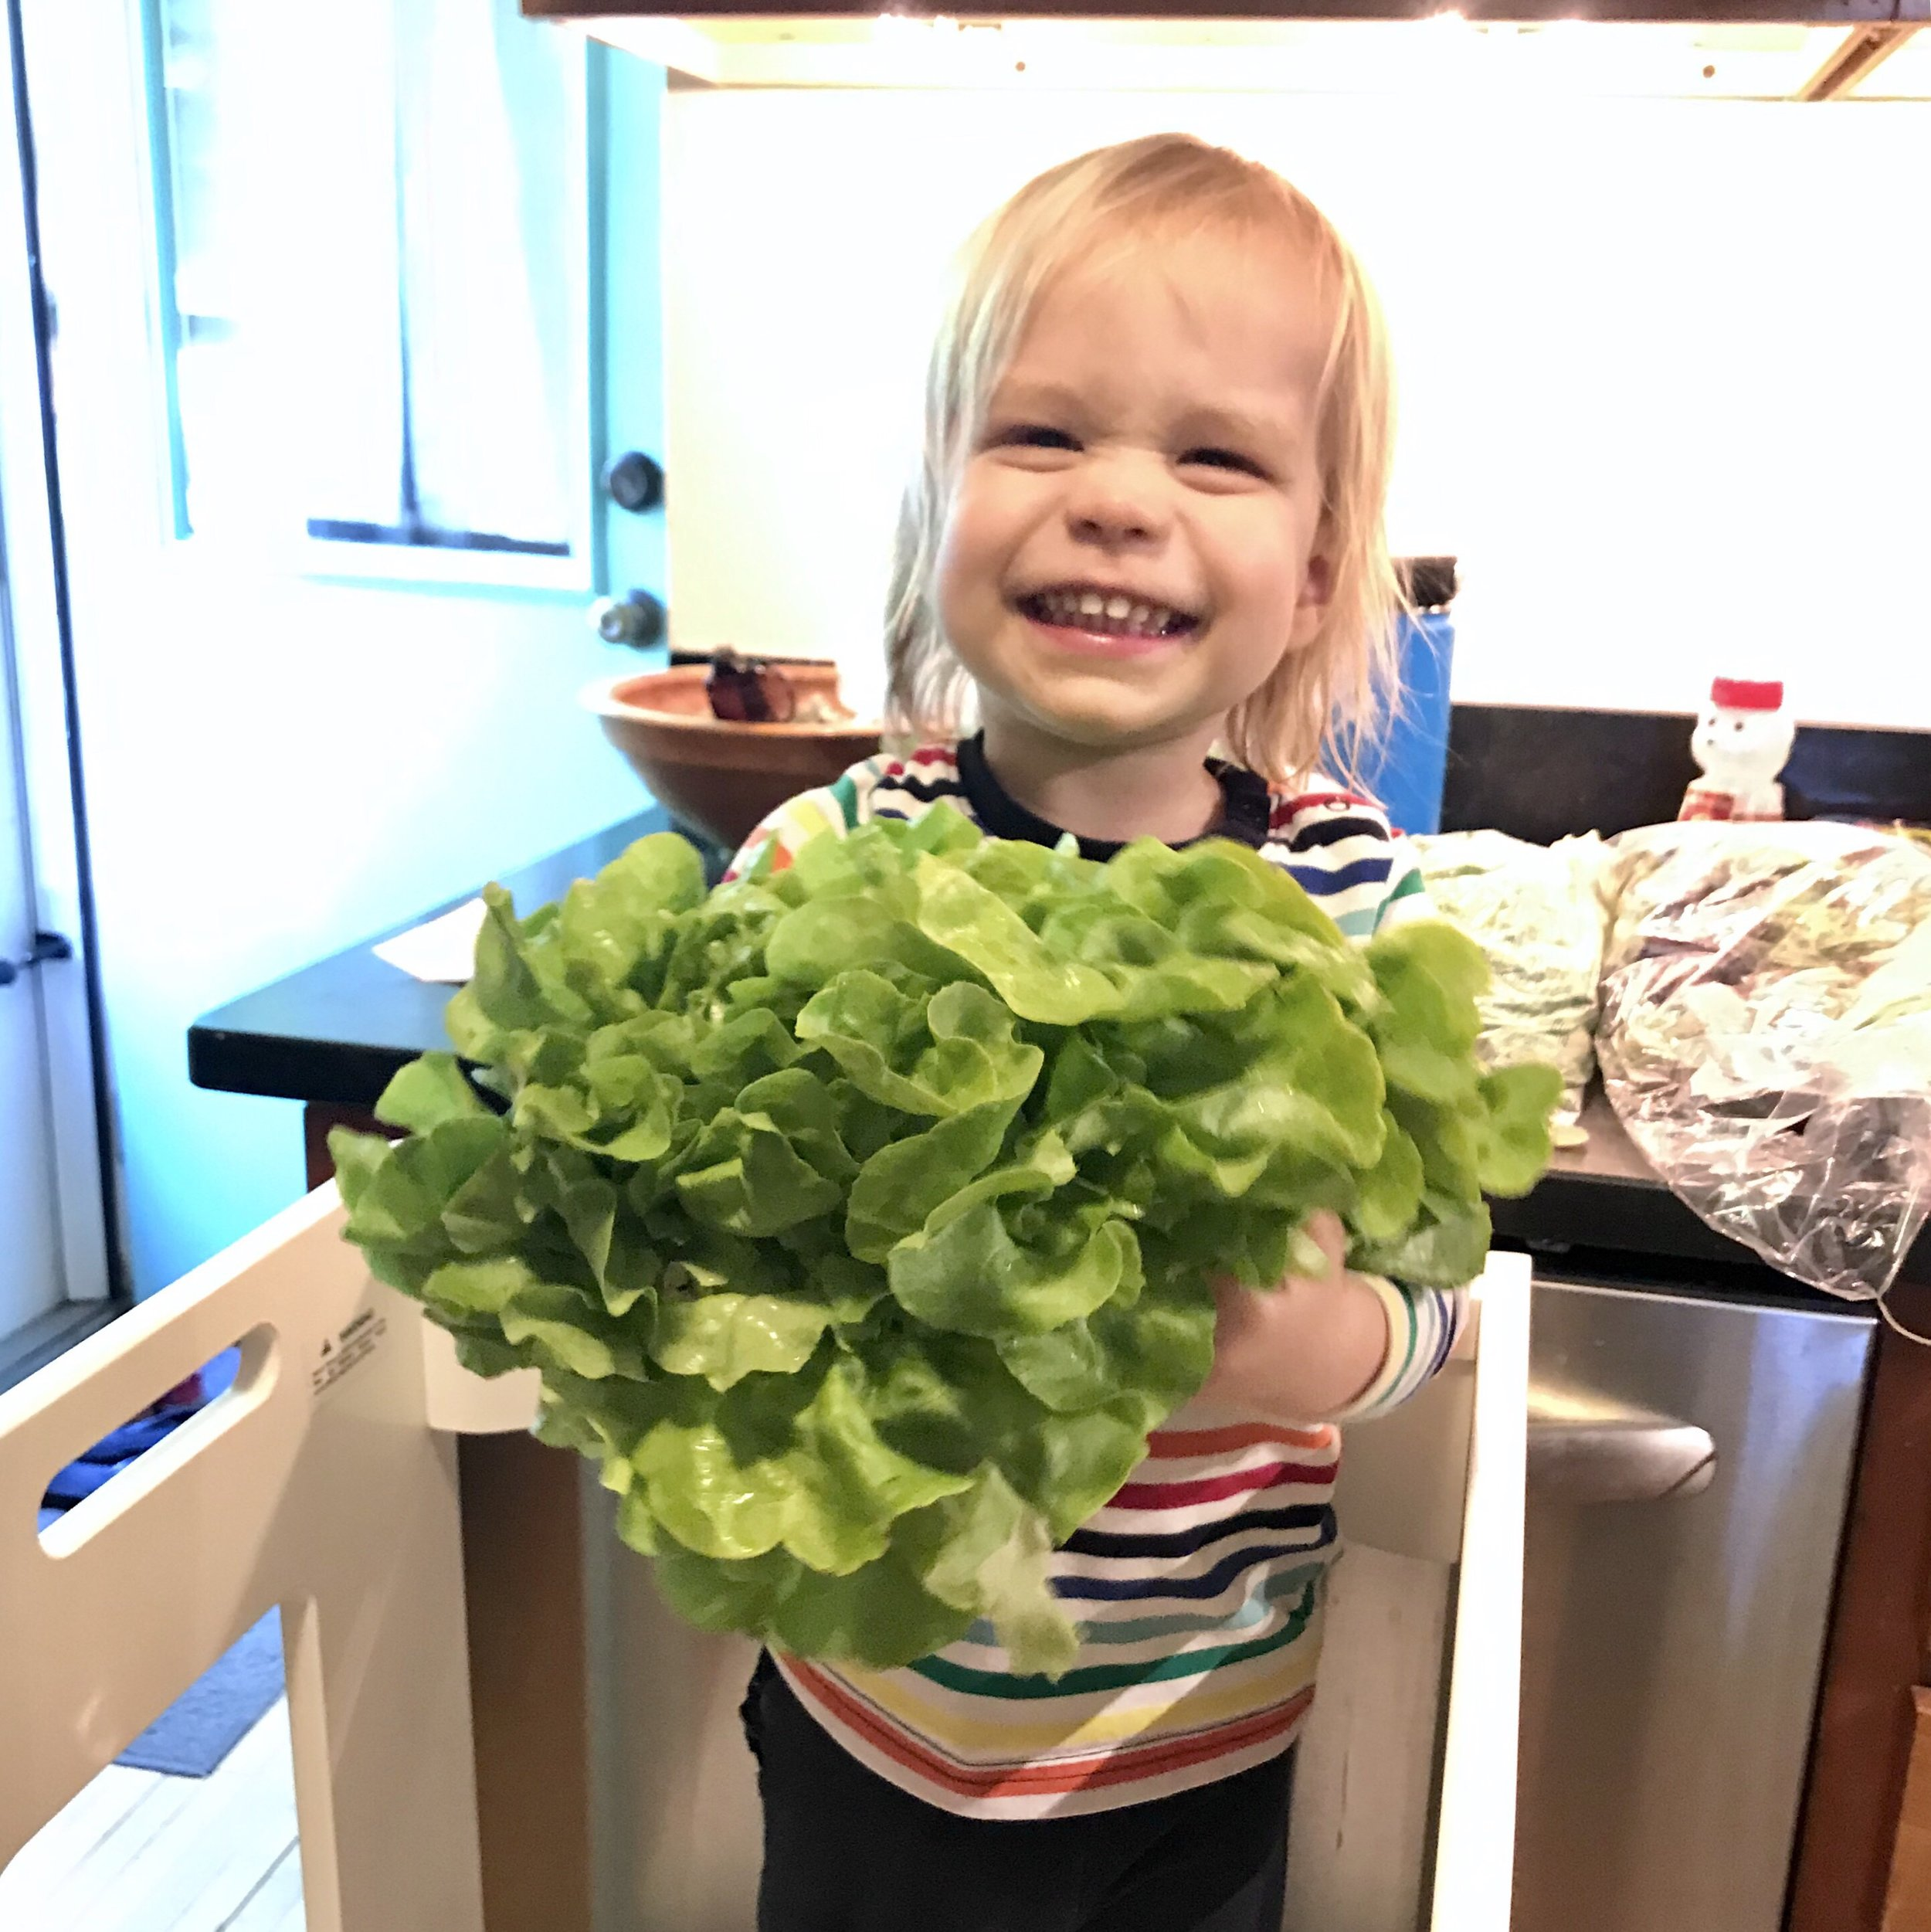 A CSA member who is feeling happy about this wonderful lettuce.  Happy salad eating, everyone!